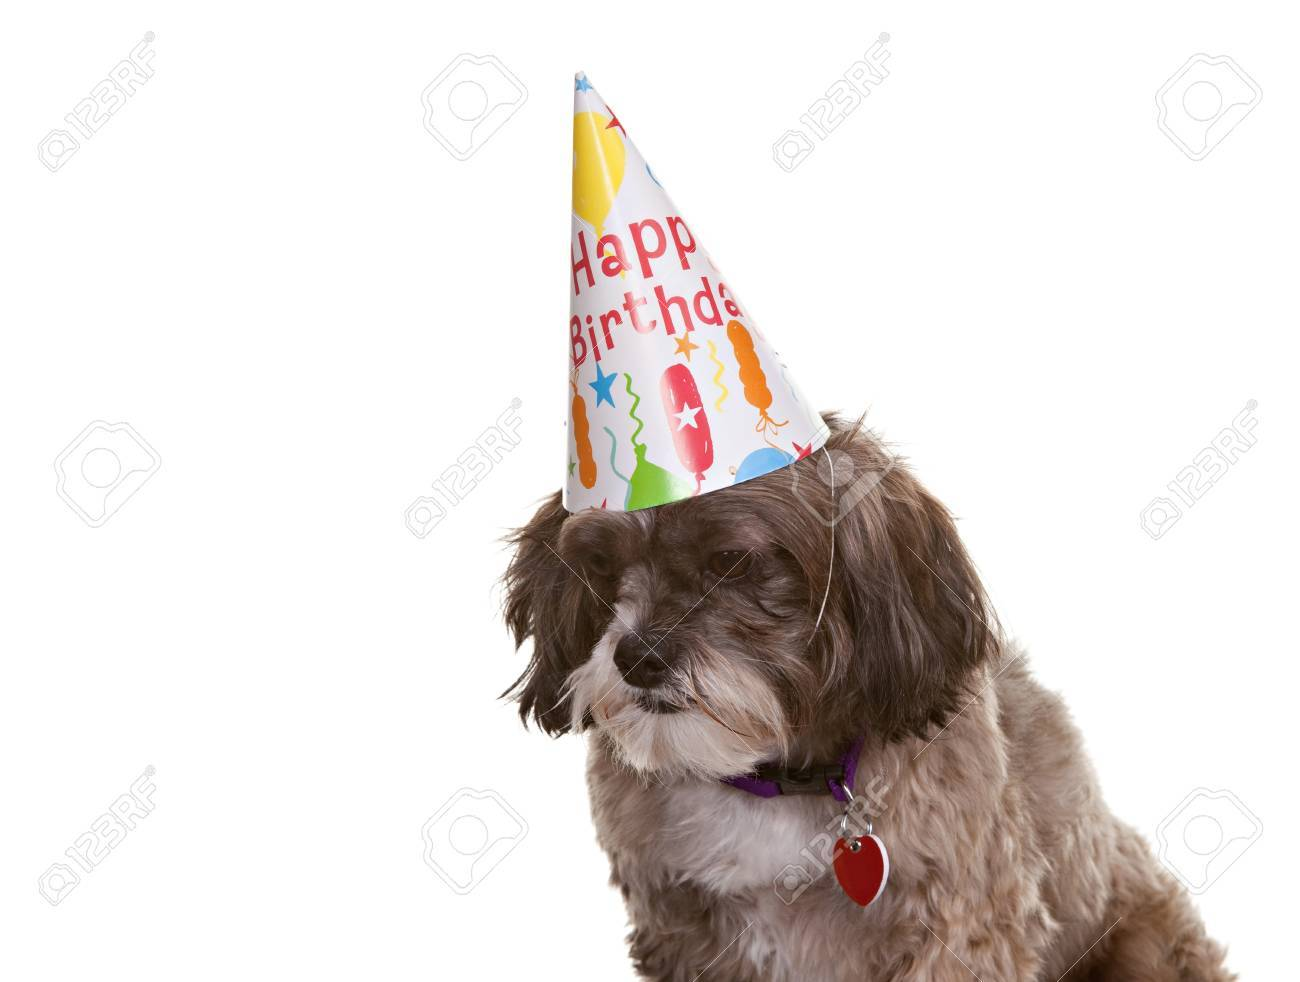 Small Dog Wearing A Birthday Party Hat Stock Photo